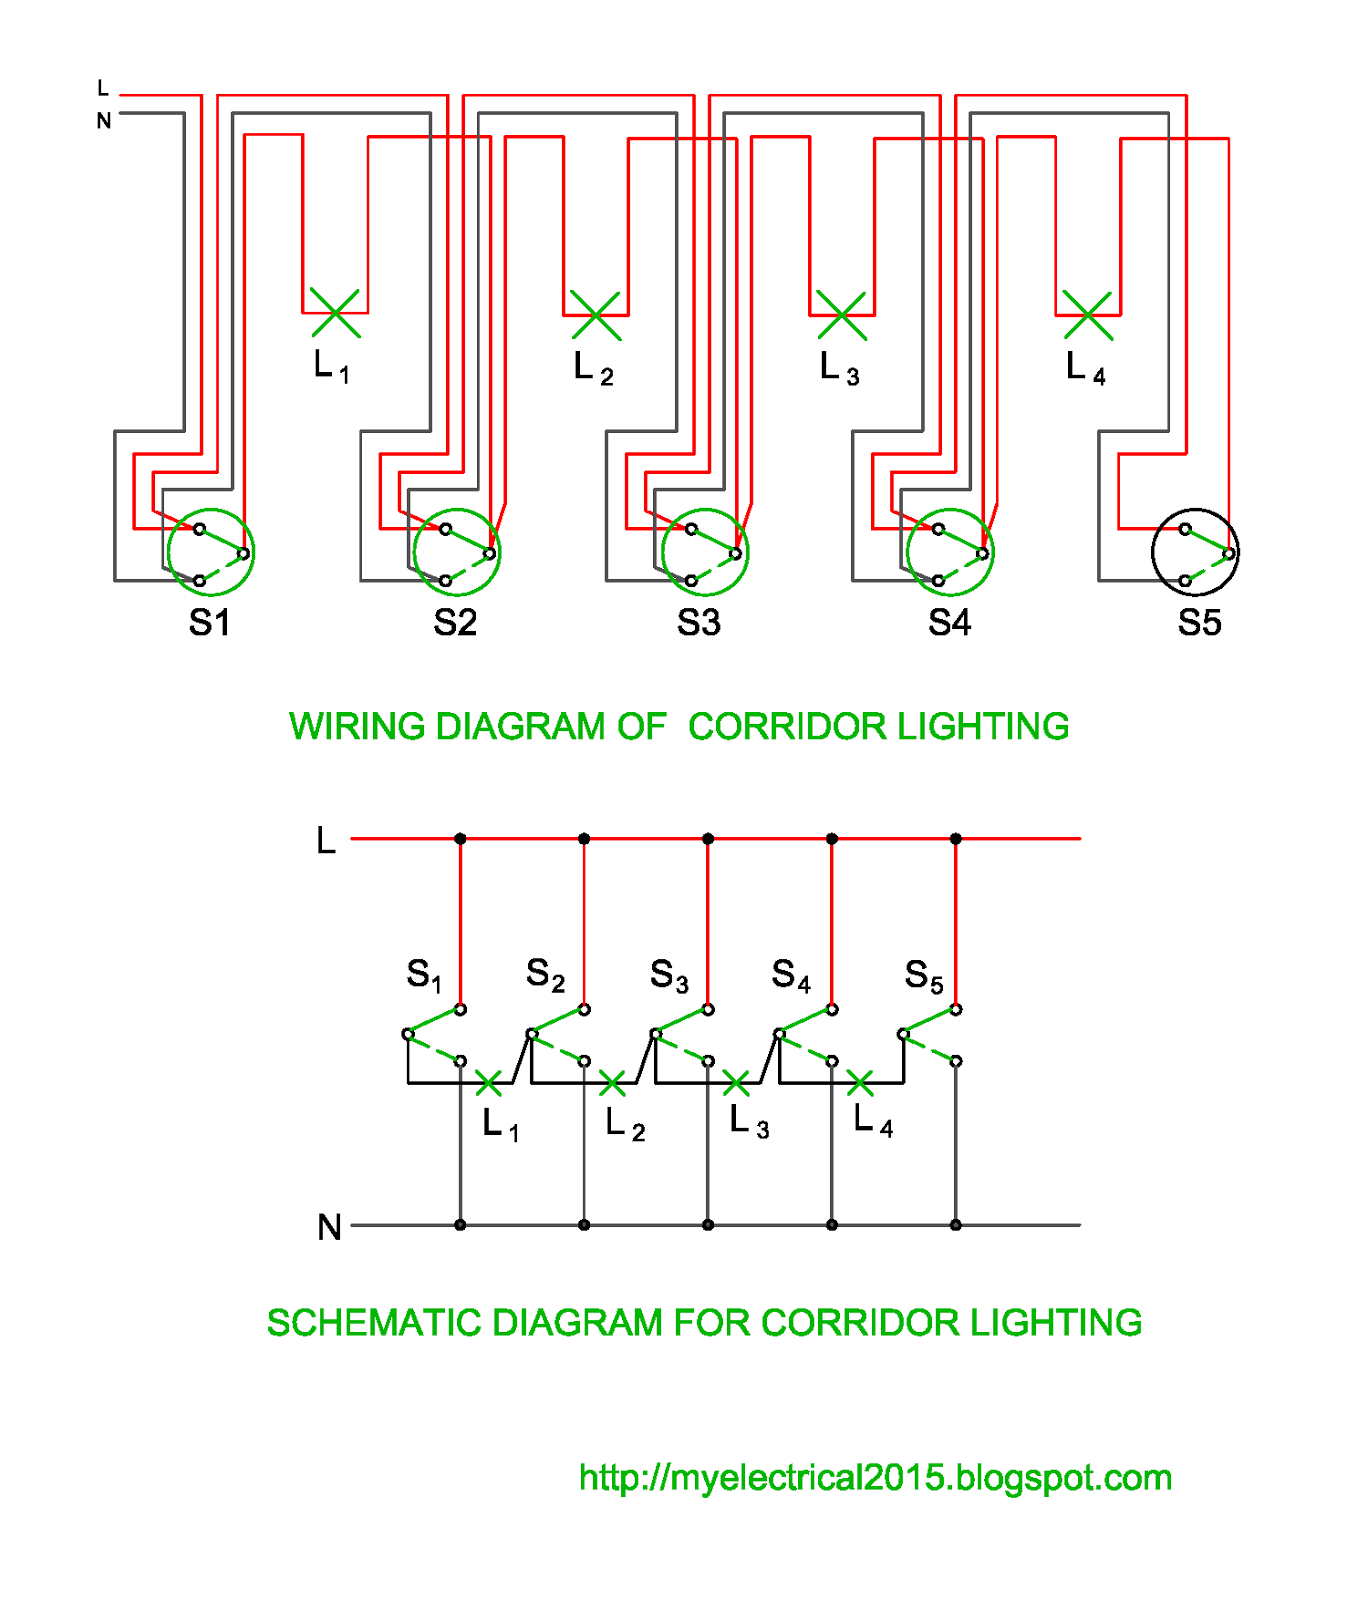 wiring and schematic diagram of corridor lighting electrical corridor light wiring diagram [ 1368 x 1600 Pixel ]